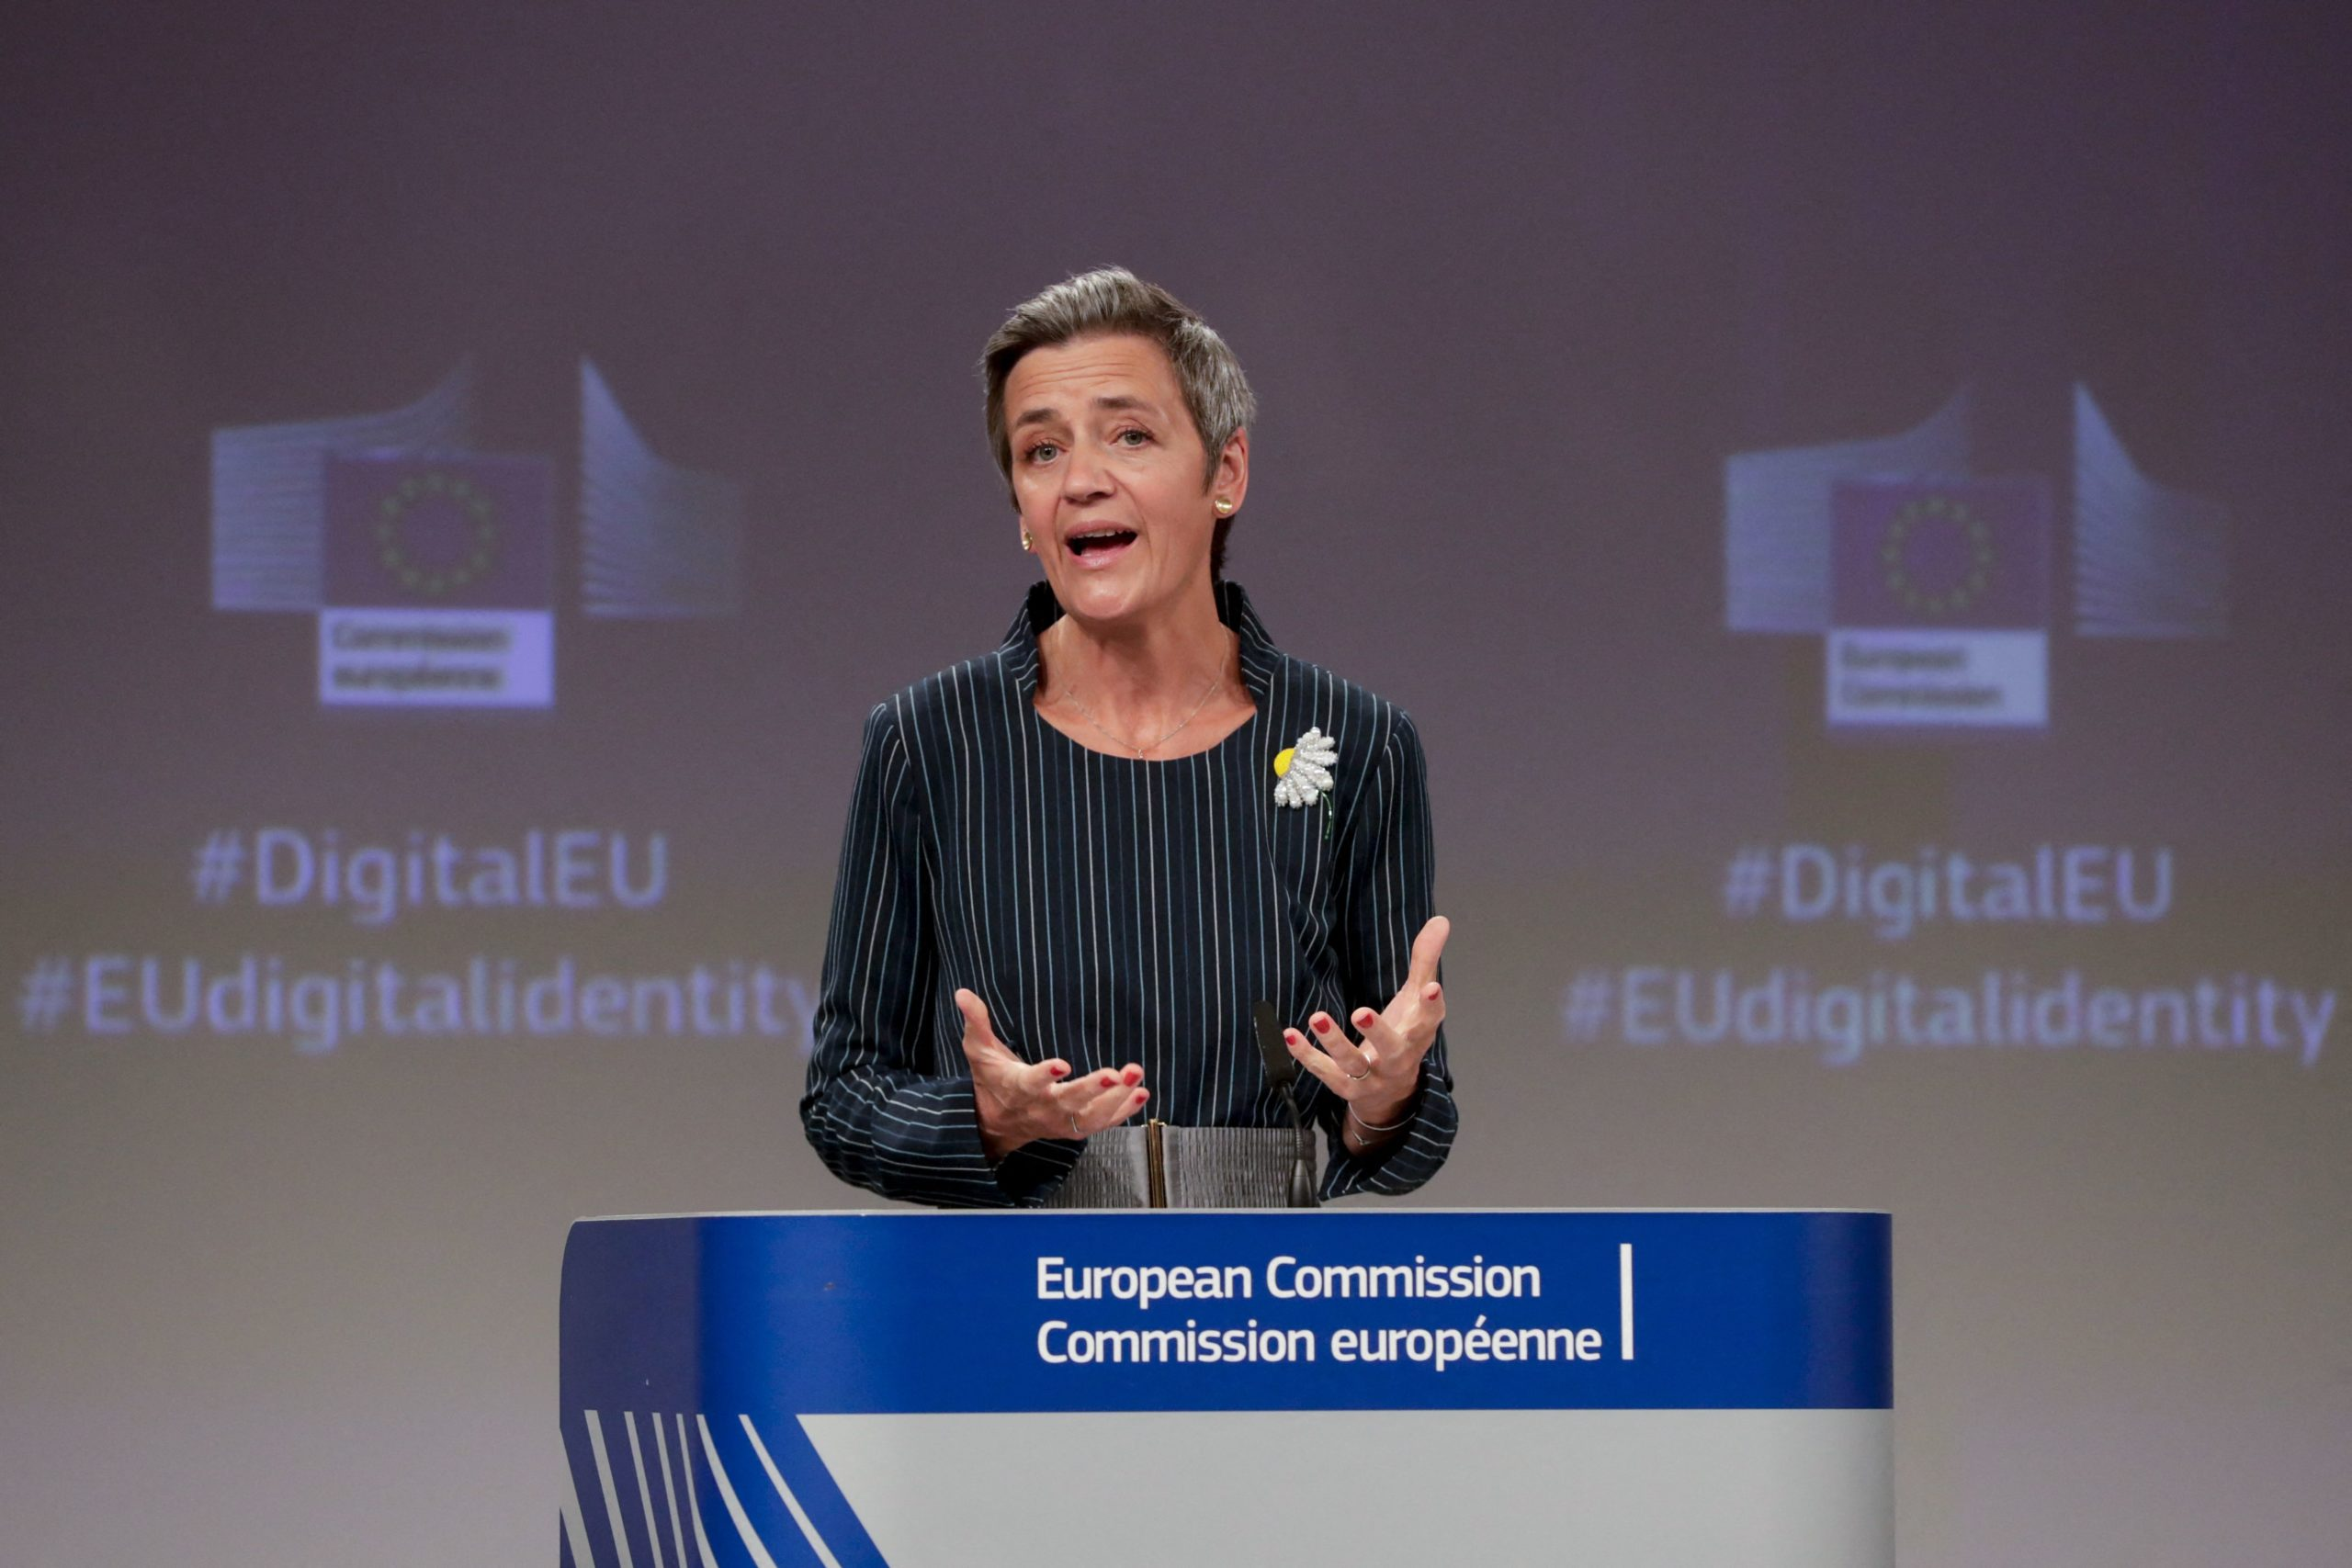 European Commission Vice President Margrethe Vestager speaks during a press conference in Brussels on Thursday. (Stephanie Lecocq/AFP via Getty Images)